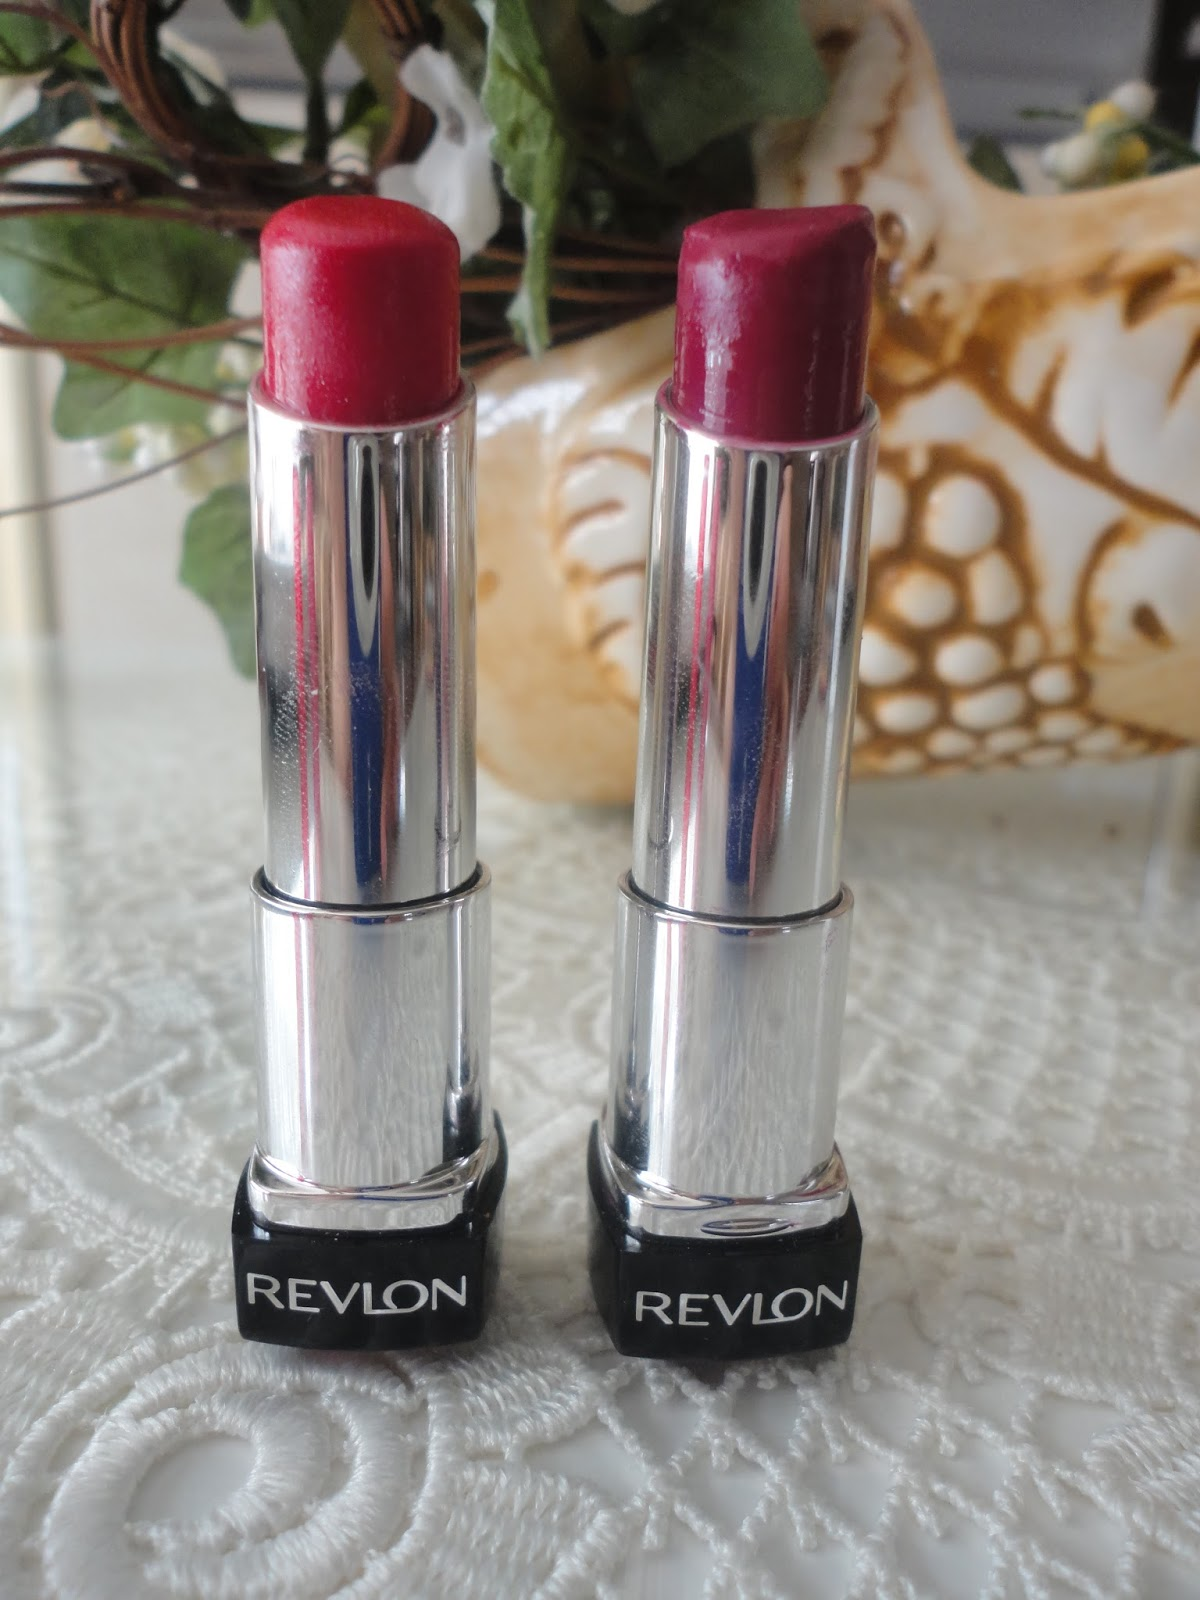 My Go-To Fall Lip Shades Revlon Colorburst Lip Butters in Cherry Tart Raspberry Pie